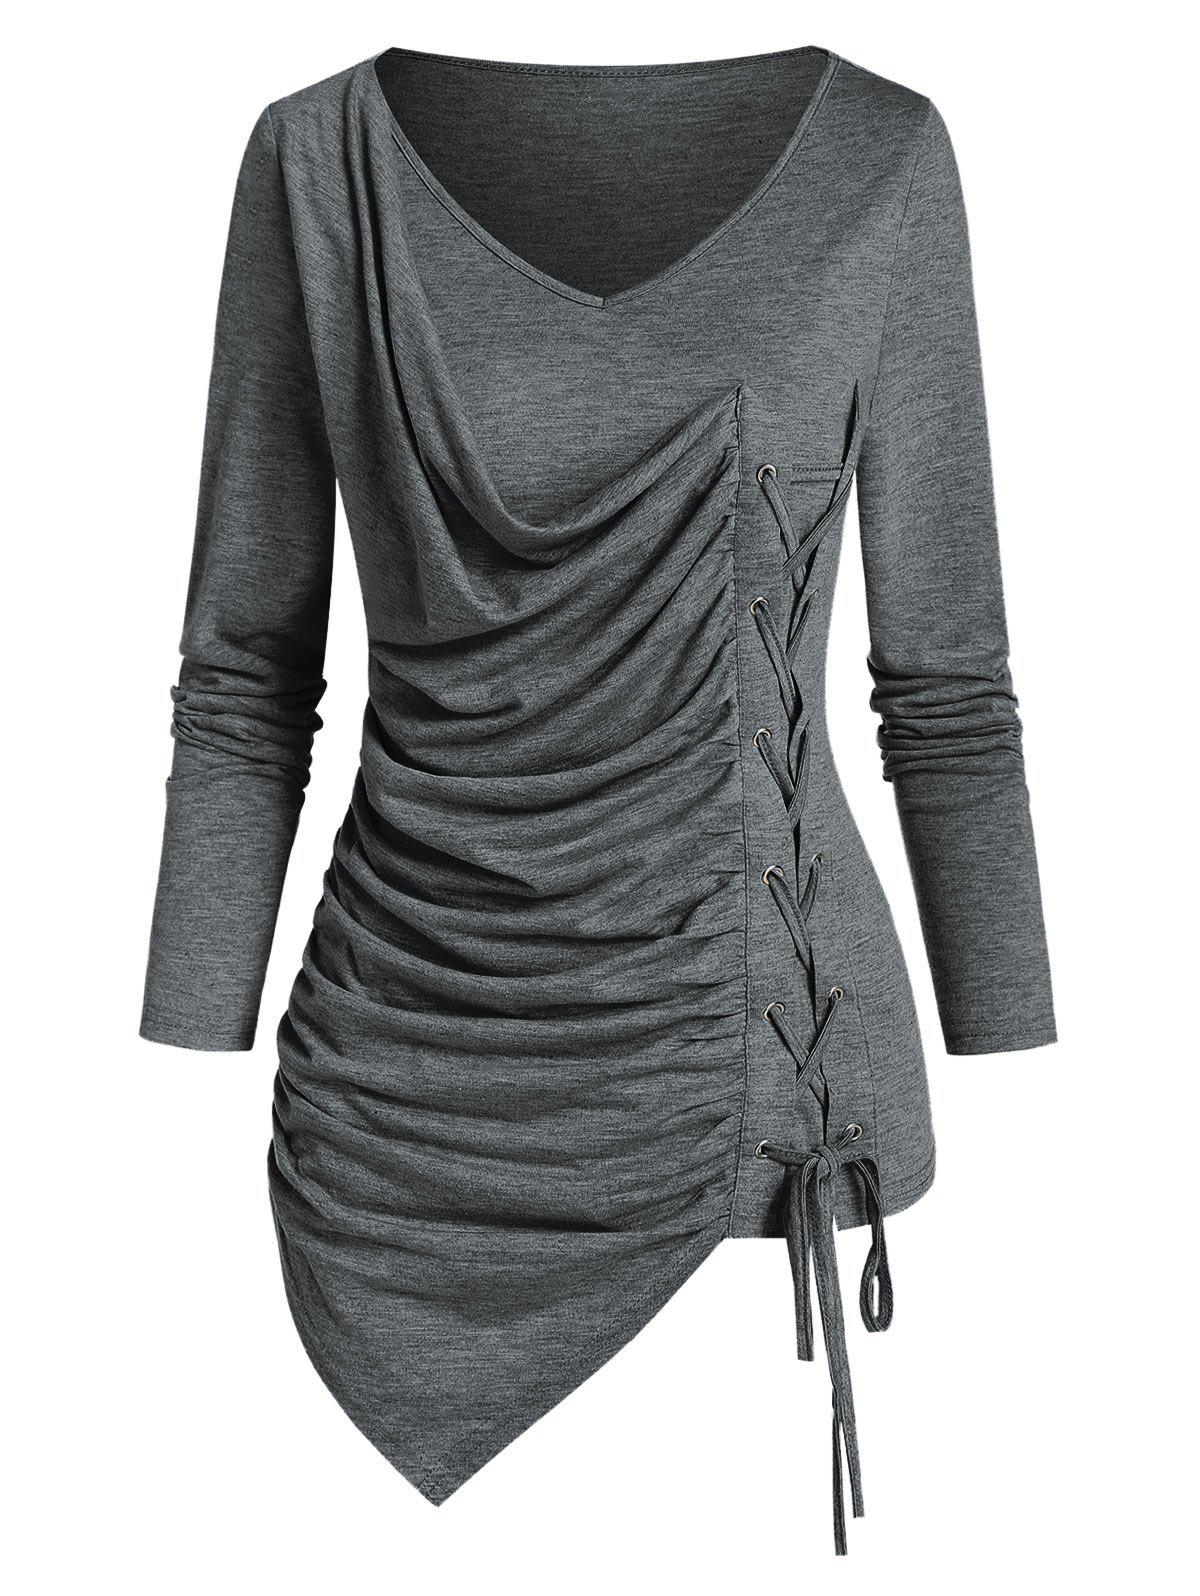 V Neck Lace Up Ruched Asymmetrical T Shirt - DARK GRAY S